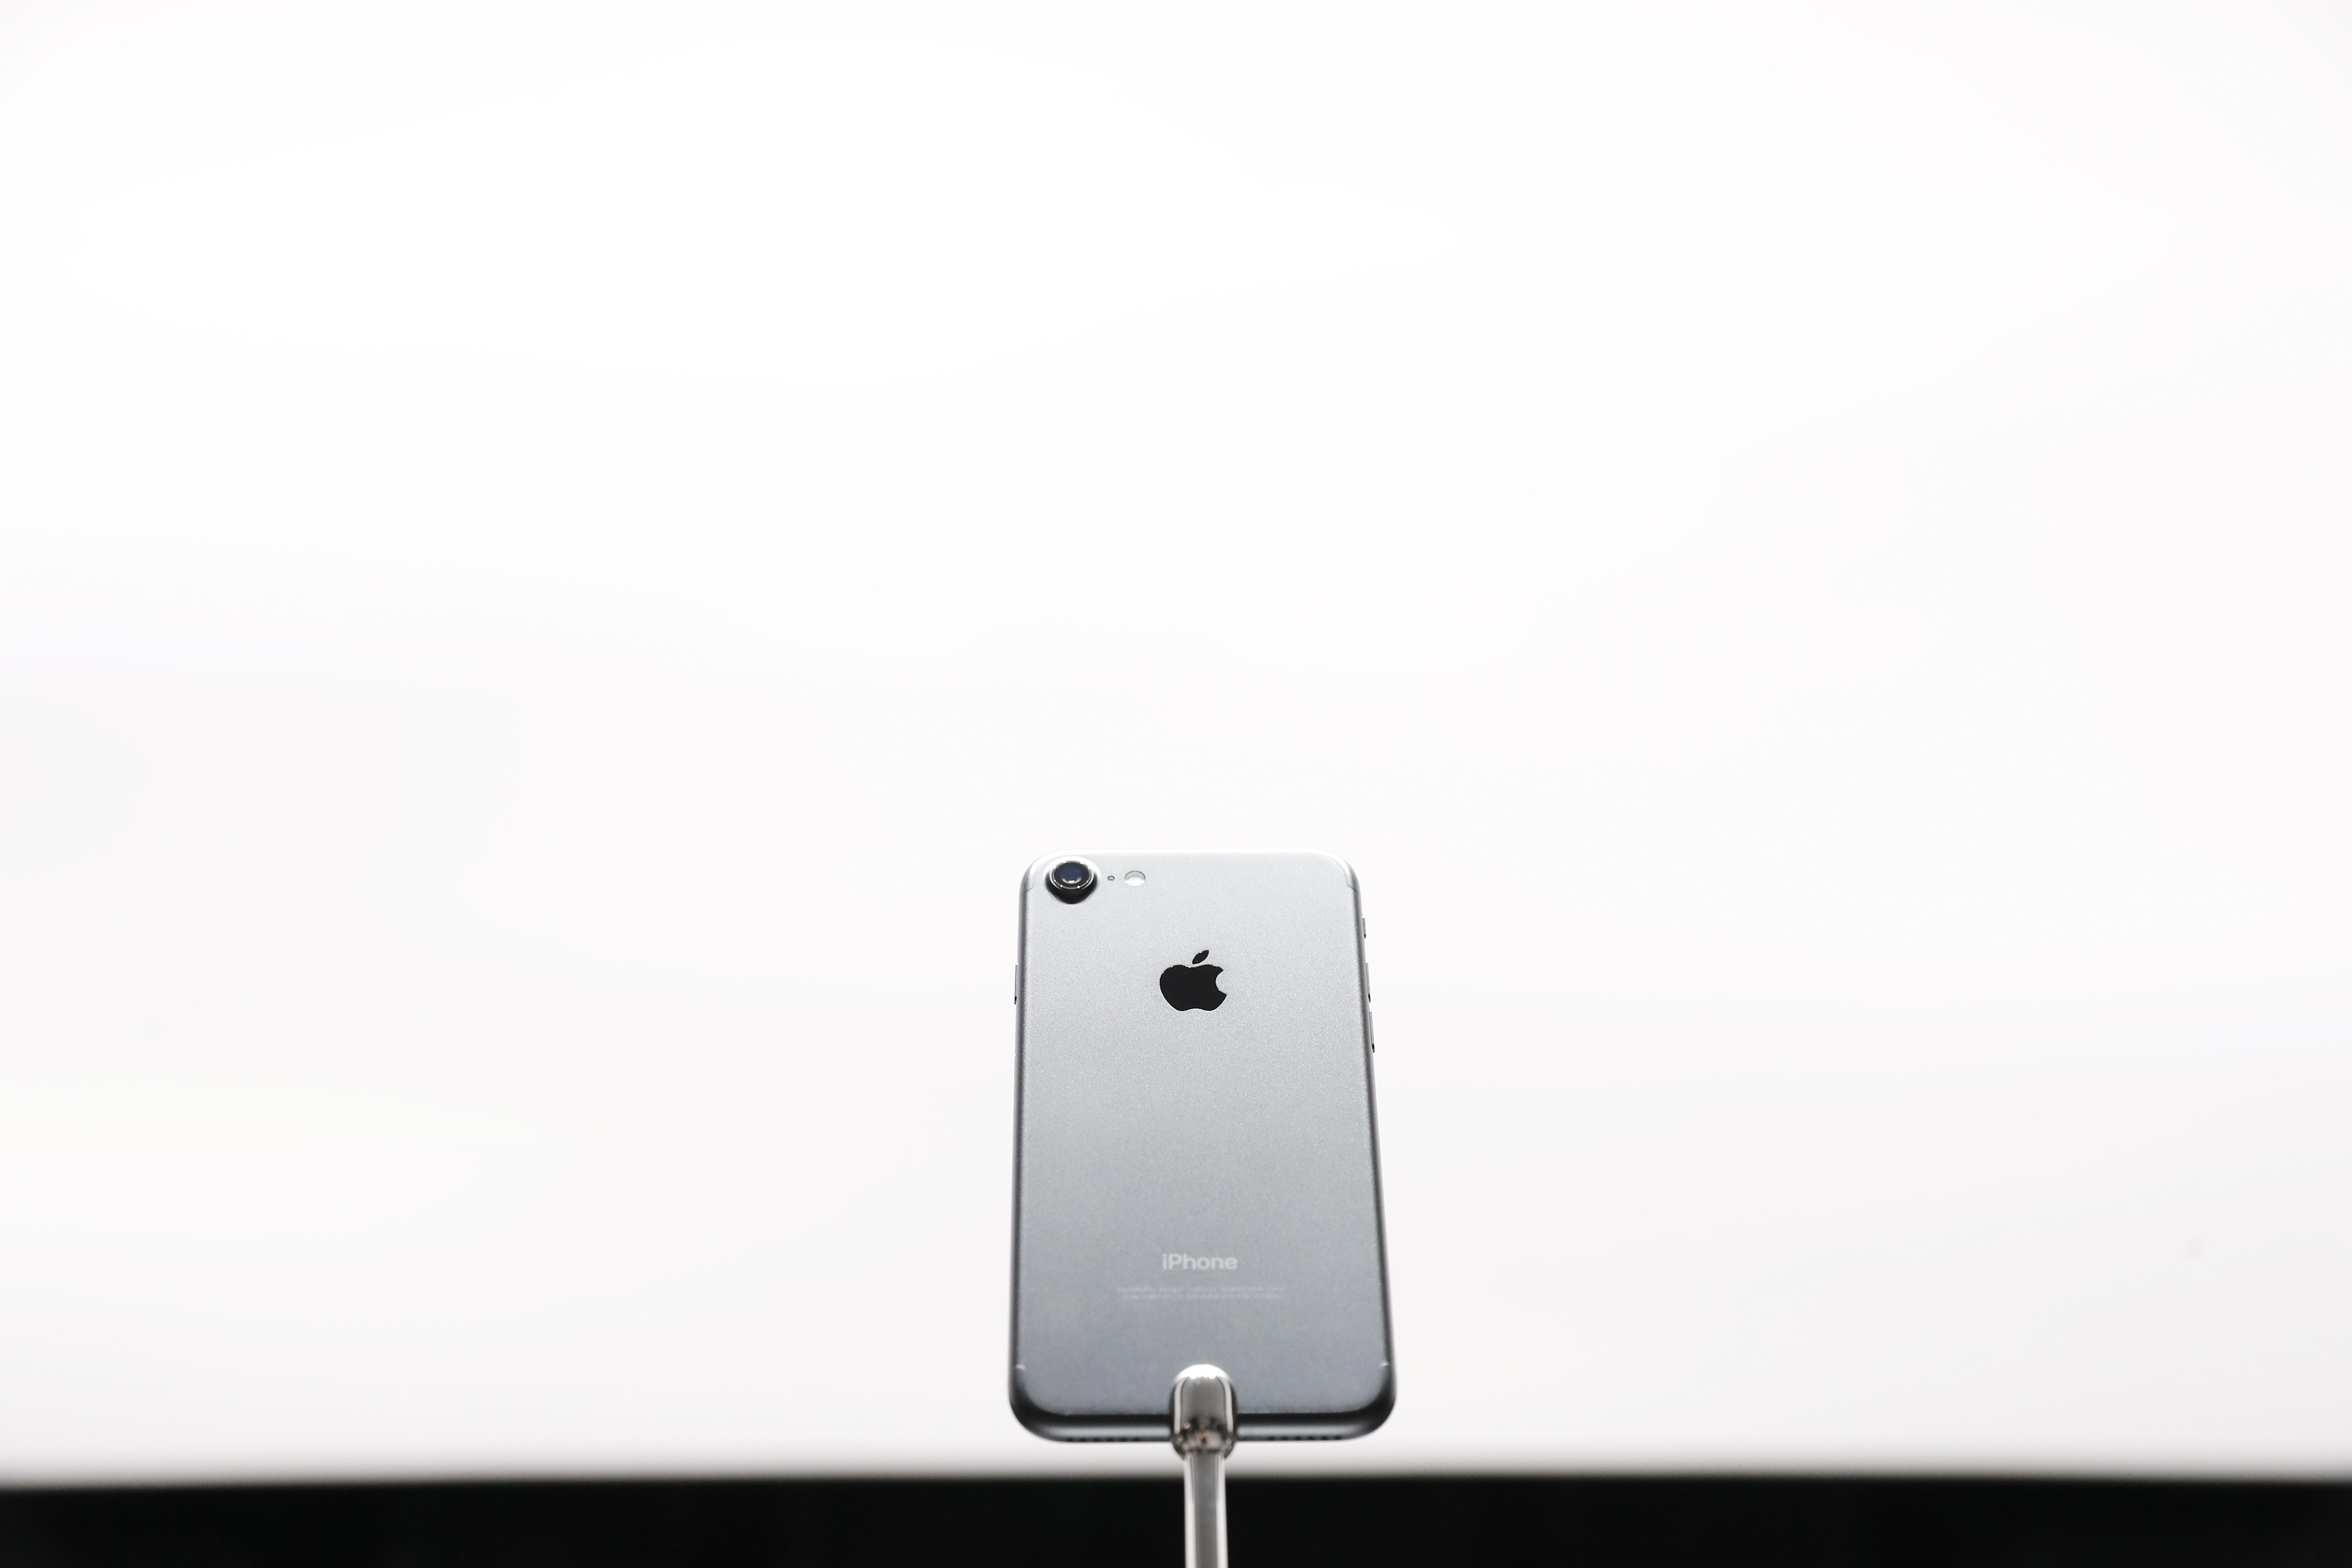 iPhone unit white